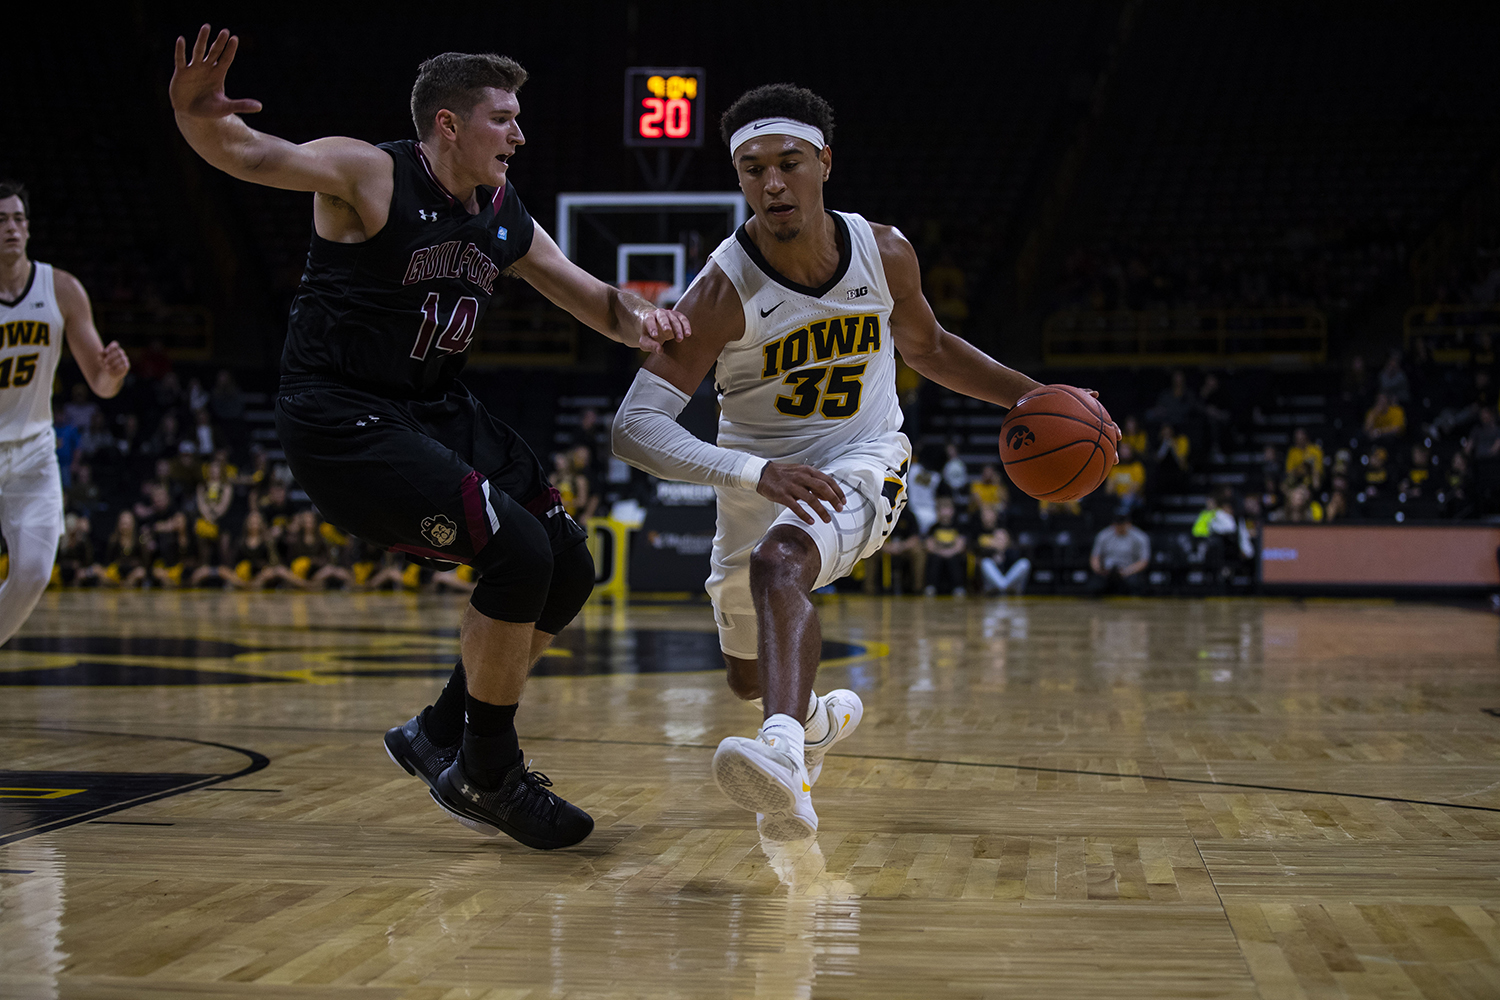 Iowa forward Cordell Pemsl drives to the hoop during the Iowa/Guilford College basketball game at Carver-Hawkeye Arena on Sunday, Nov. 4, 2018. The Hawkeyes defeated the Quakers, 103-46.